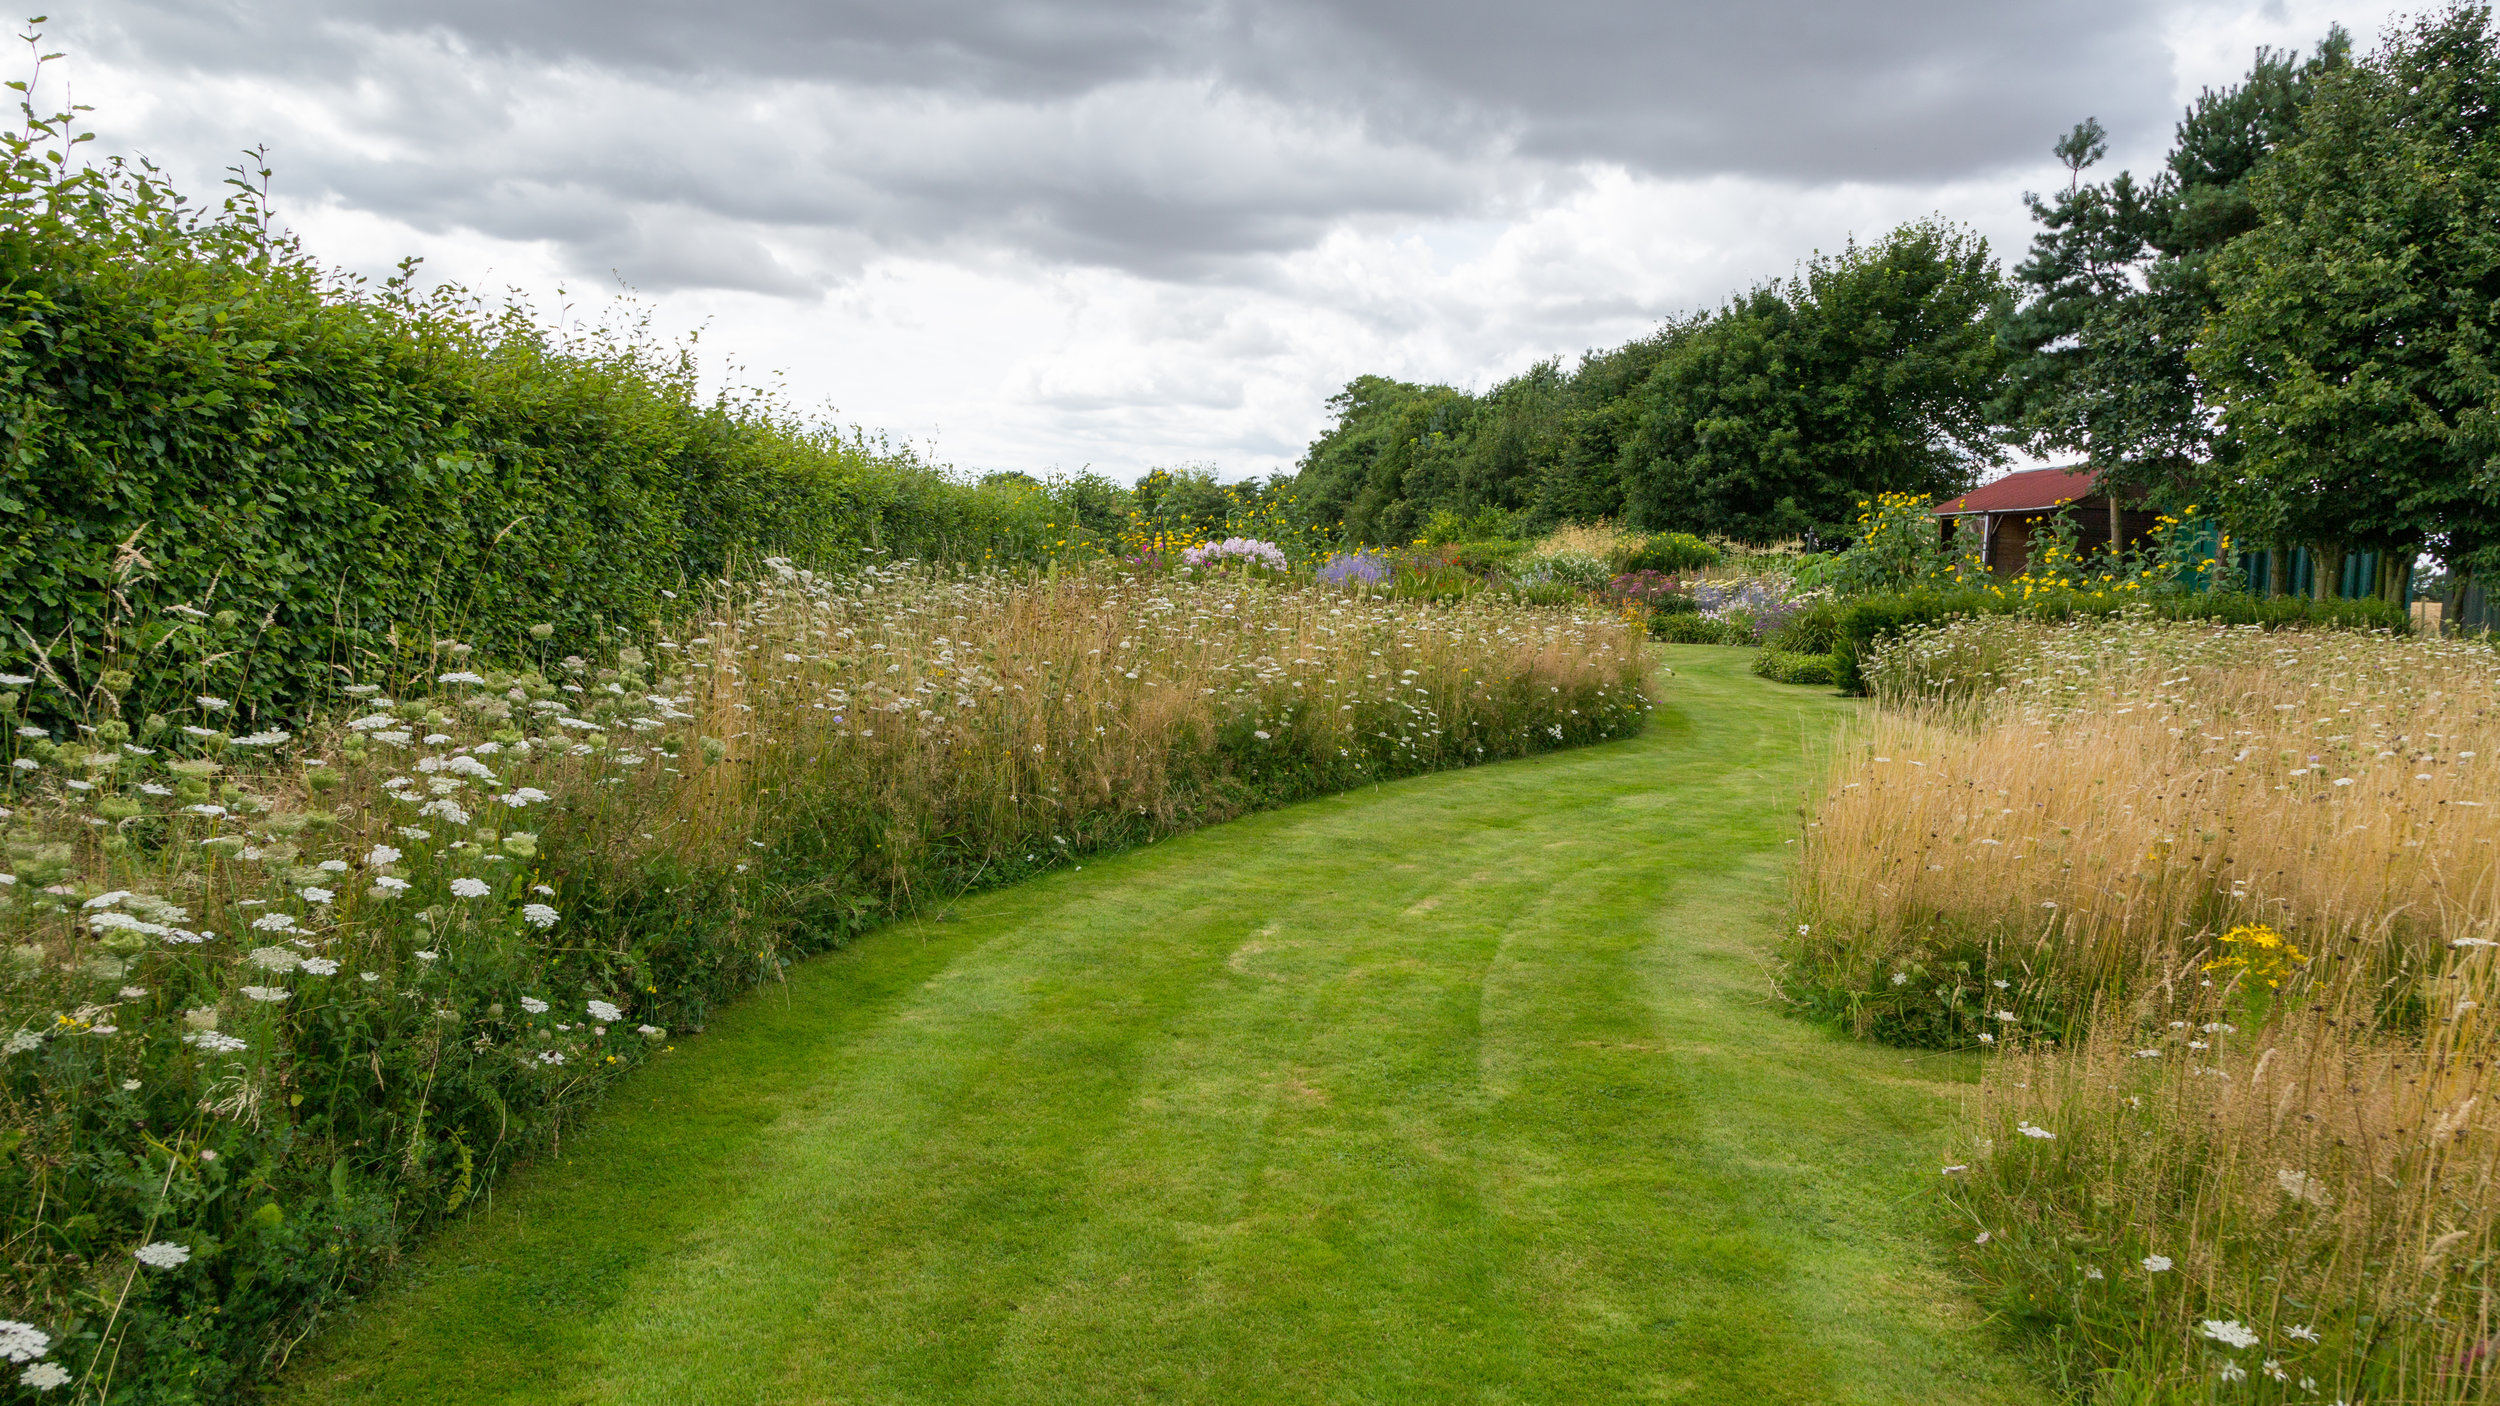 Annual, meadow-like swathes lead you into the colourful Prairie Borders at Brightwater Gardens. Image: Chris Denning/Verve Garden Design.